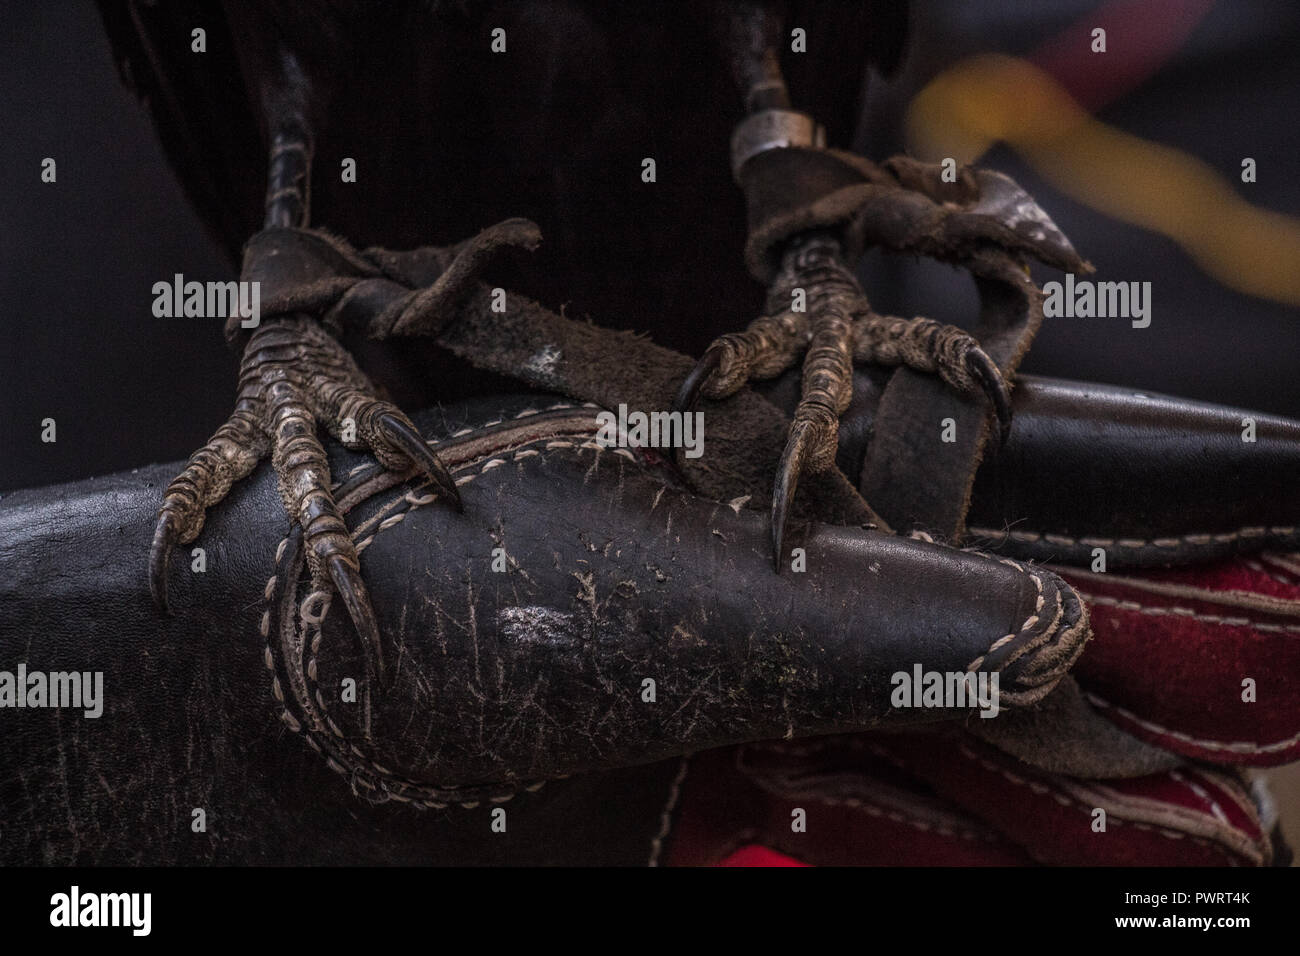 black crow claw detail - Stock Image